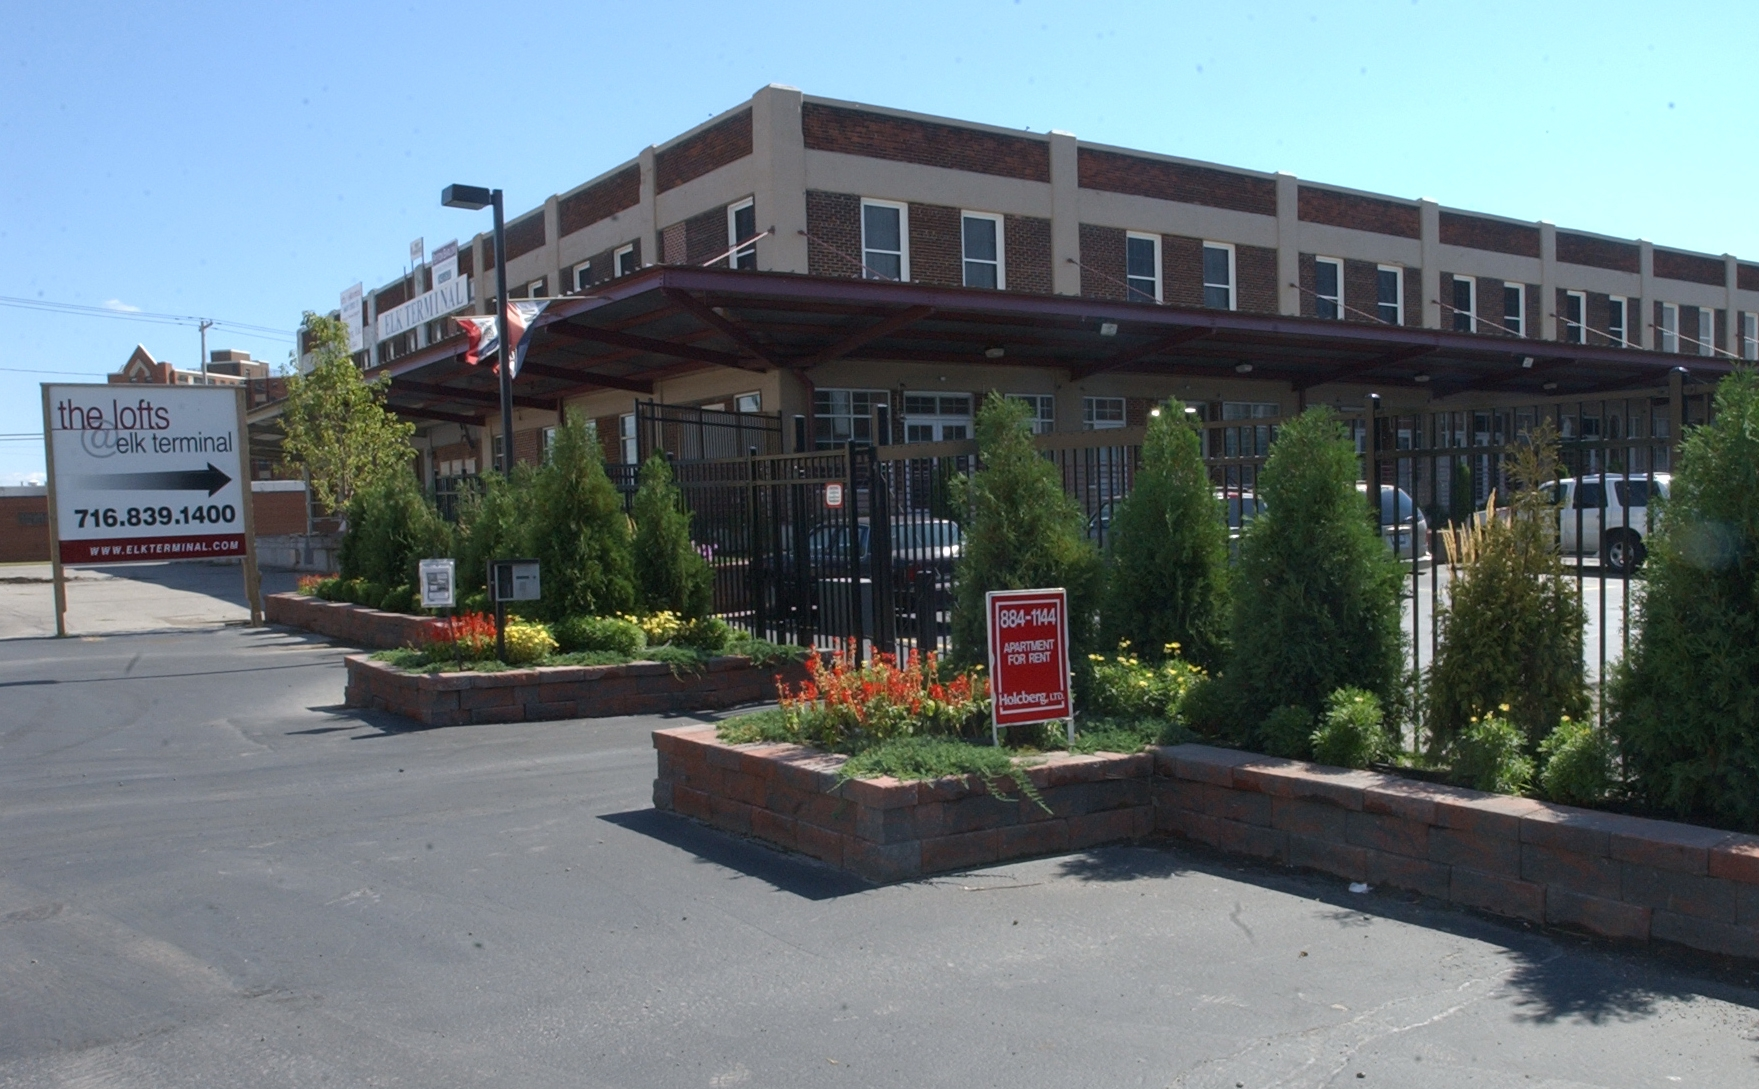 Entrance to the Lofts @ Elk Terminal.